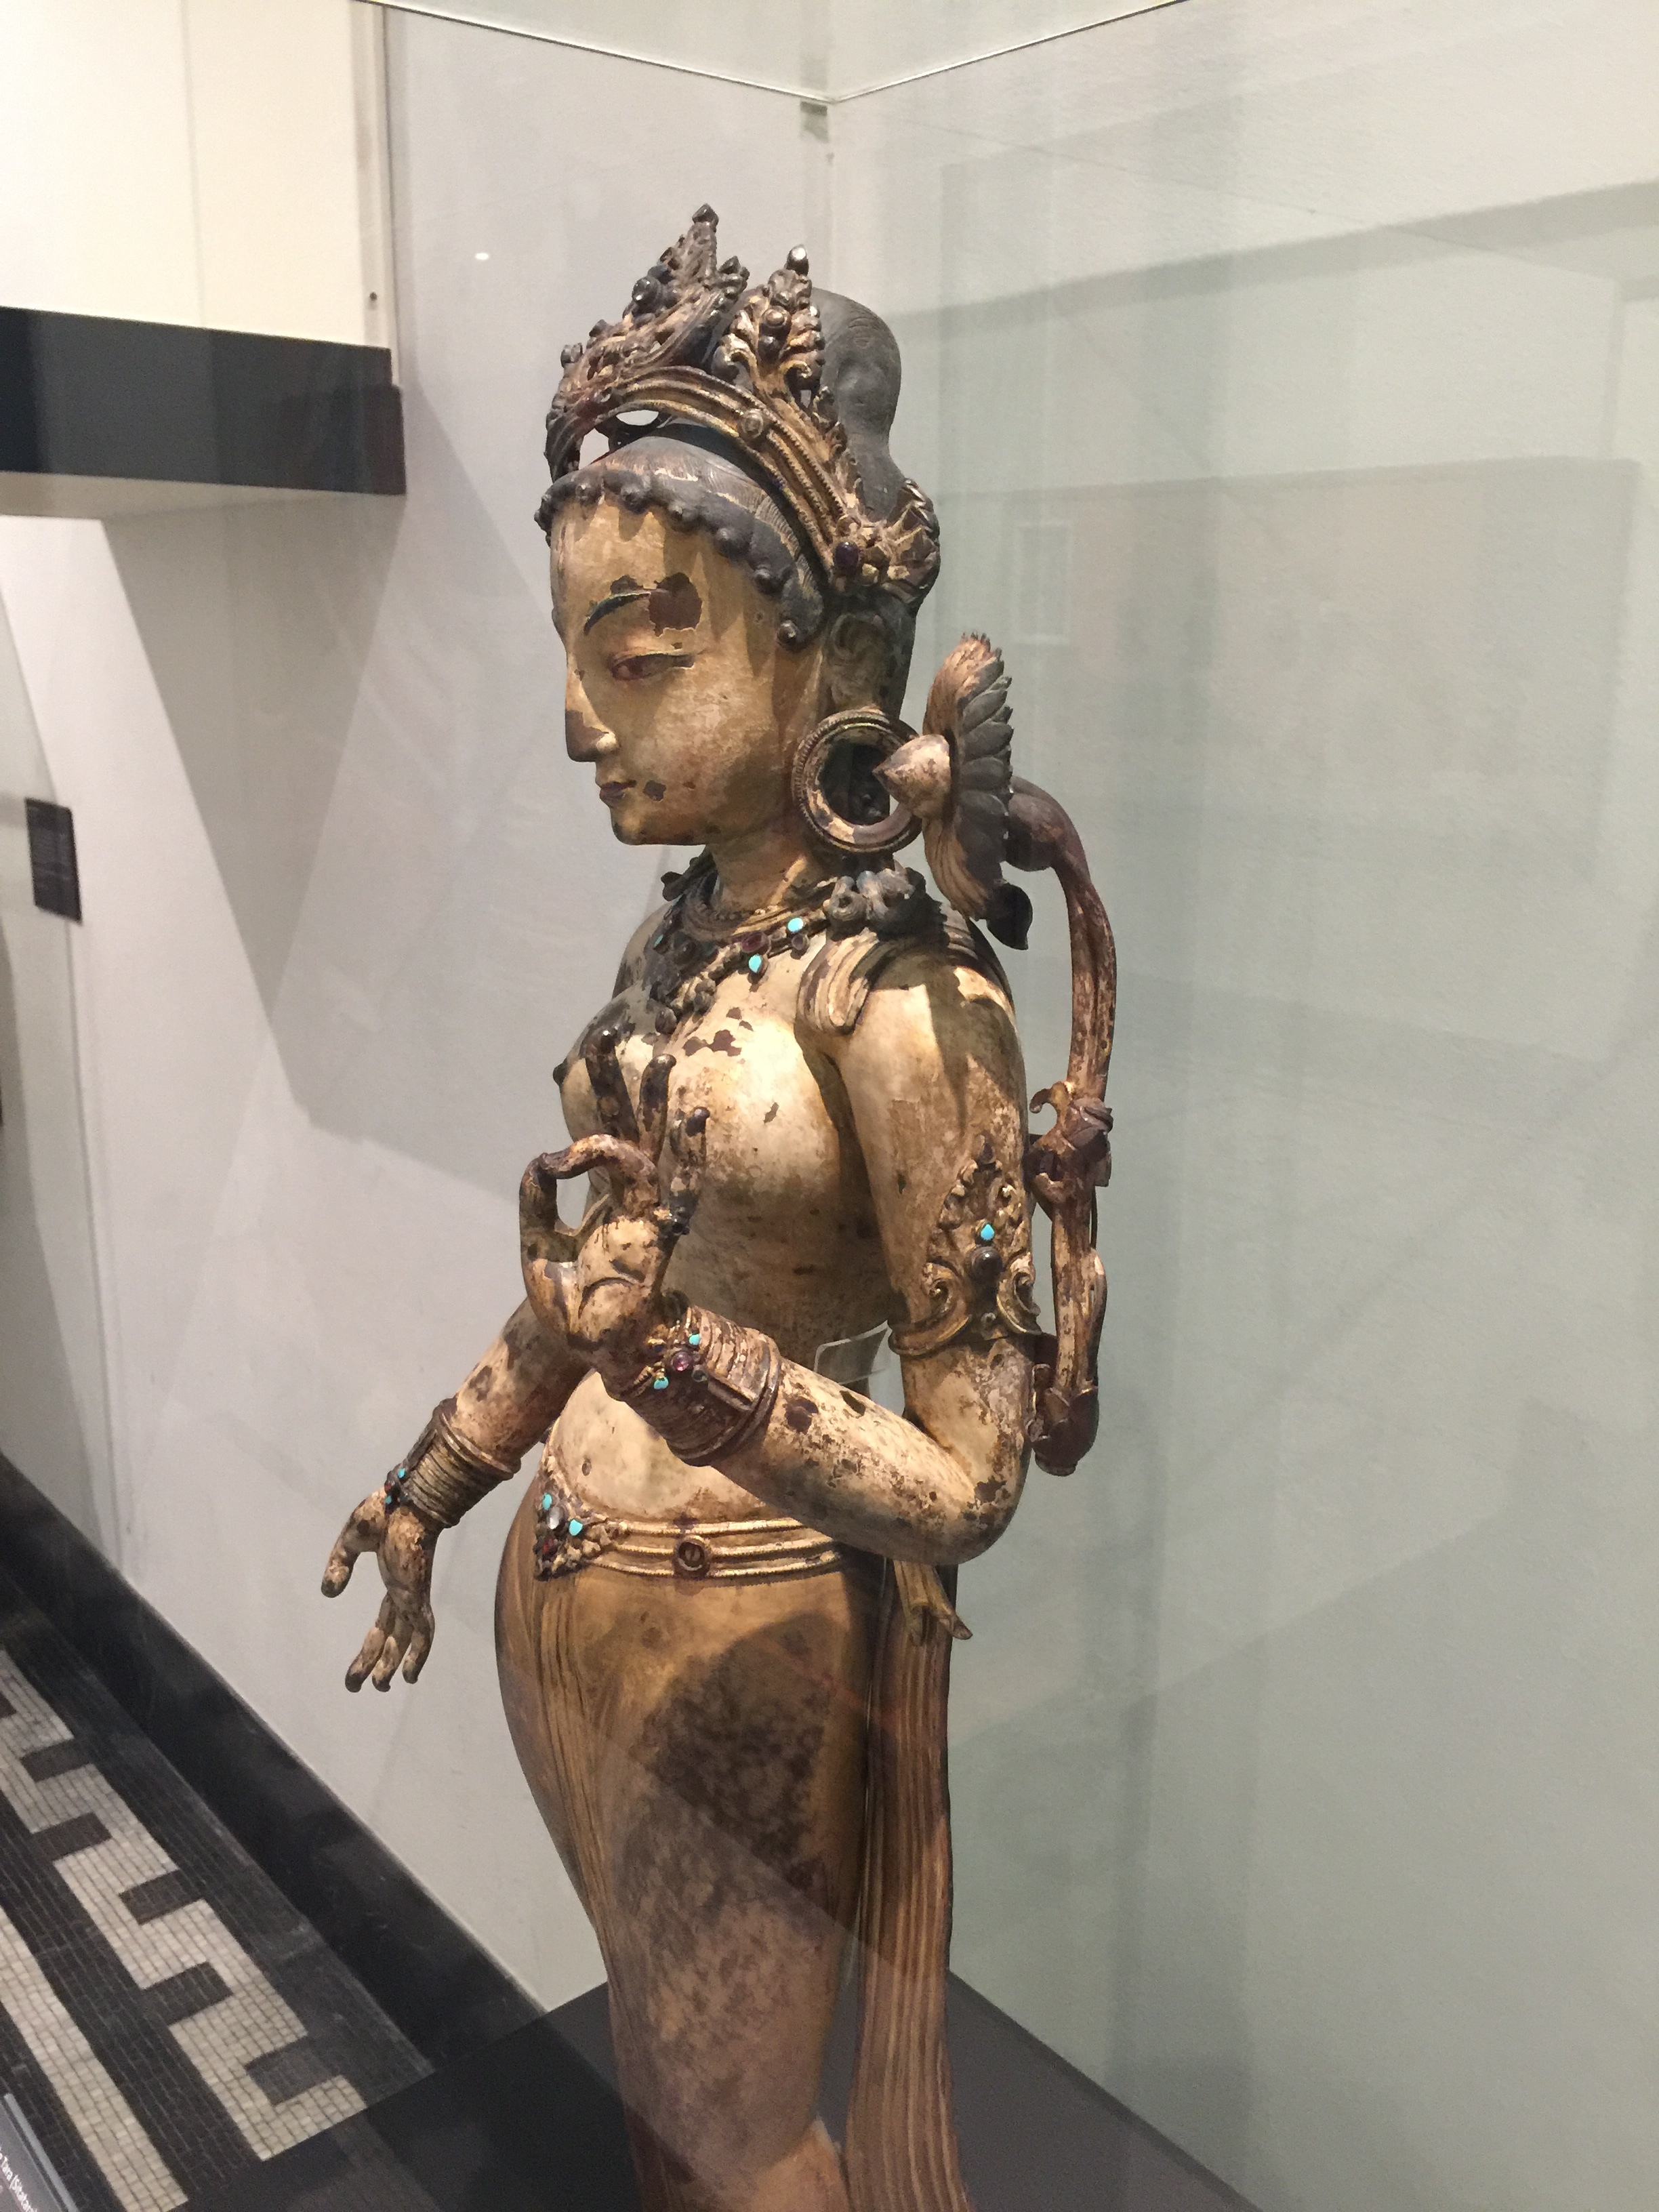 White Tara with lotus over shoulder and giving a blessing, Nepal, 1300-1400. In Buddhism, Tara is associated with liberation, compassion, and success. From the Victoria & Albert Museum.